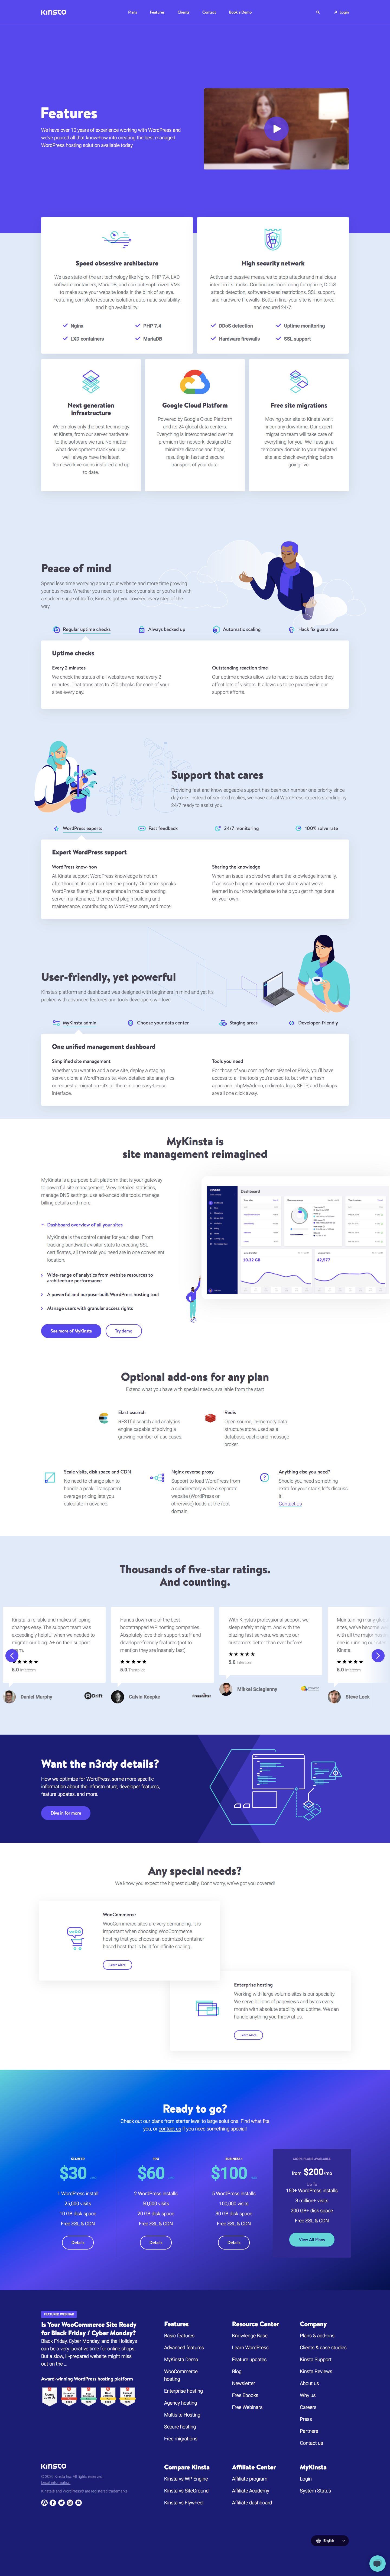 Kinsta Features Page